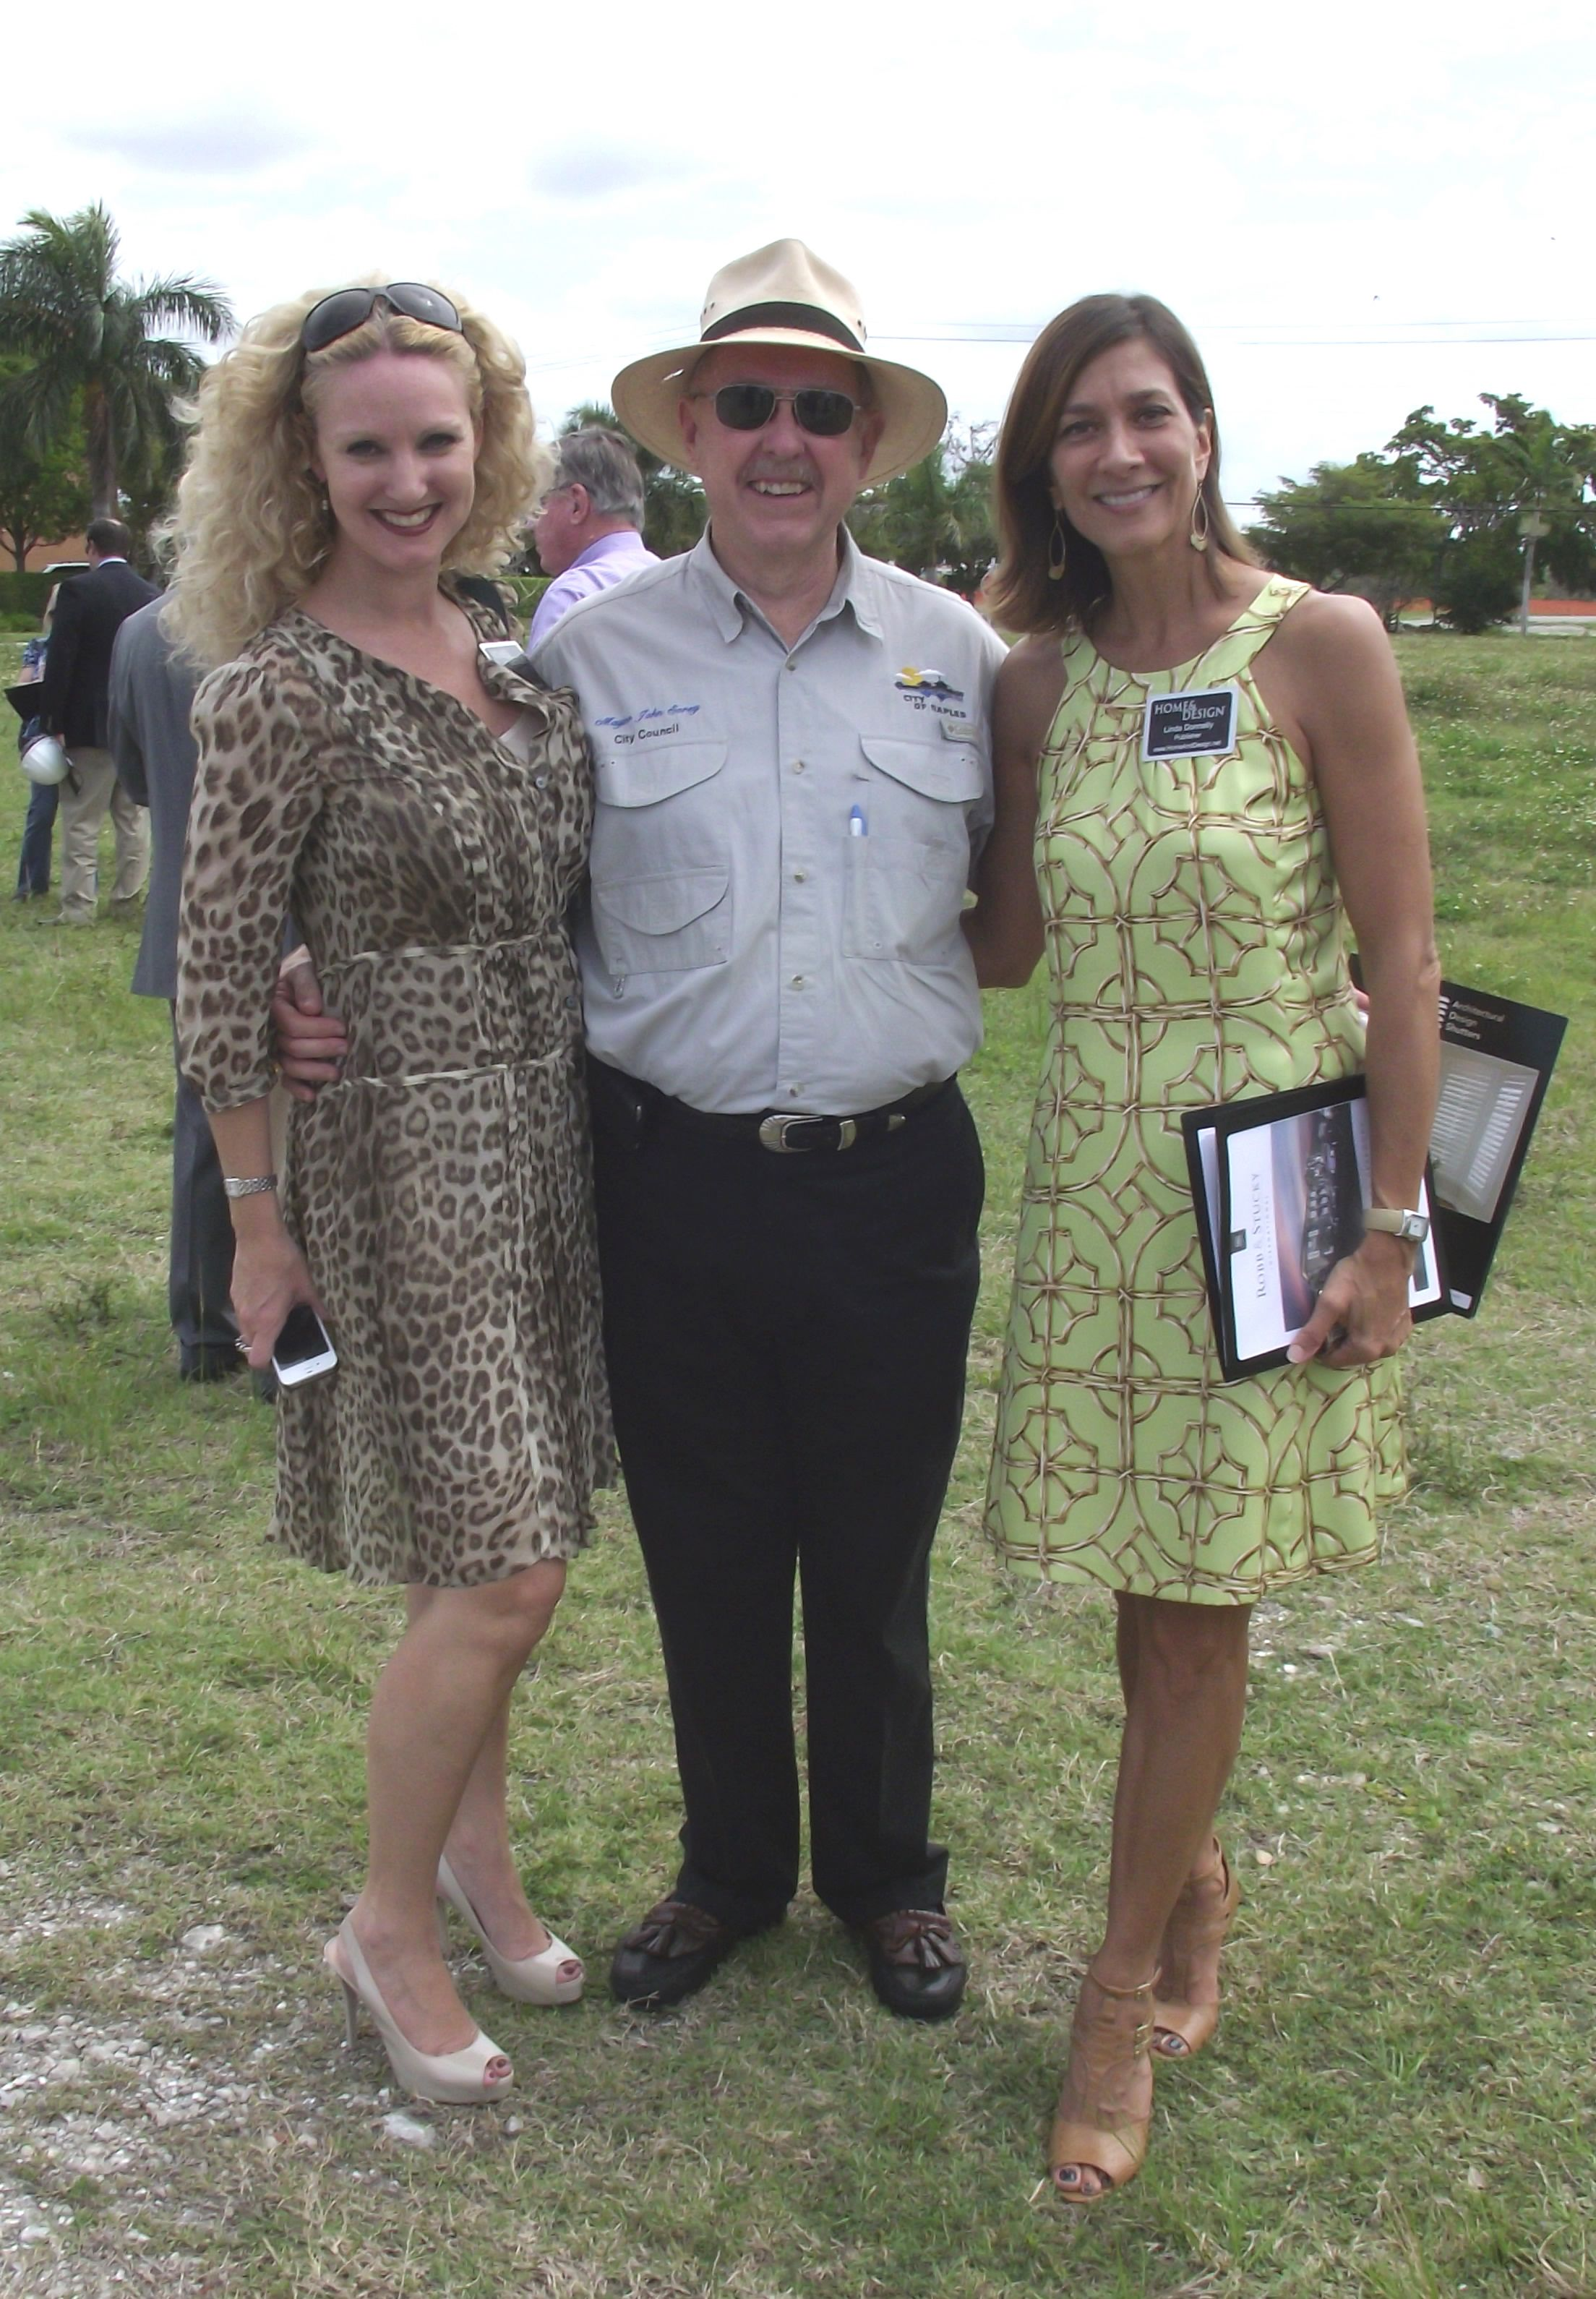 BREAKING GROUND | Home U0026 Design Magazine Editor In Chief Alisa Bowen, Mayor  John Sorey Of Naples, Florida And Publisher Linda Luongo Donnelly At The  Naples ...